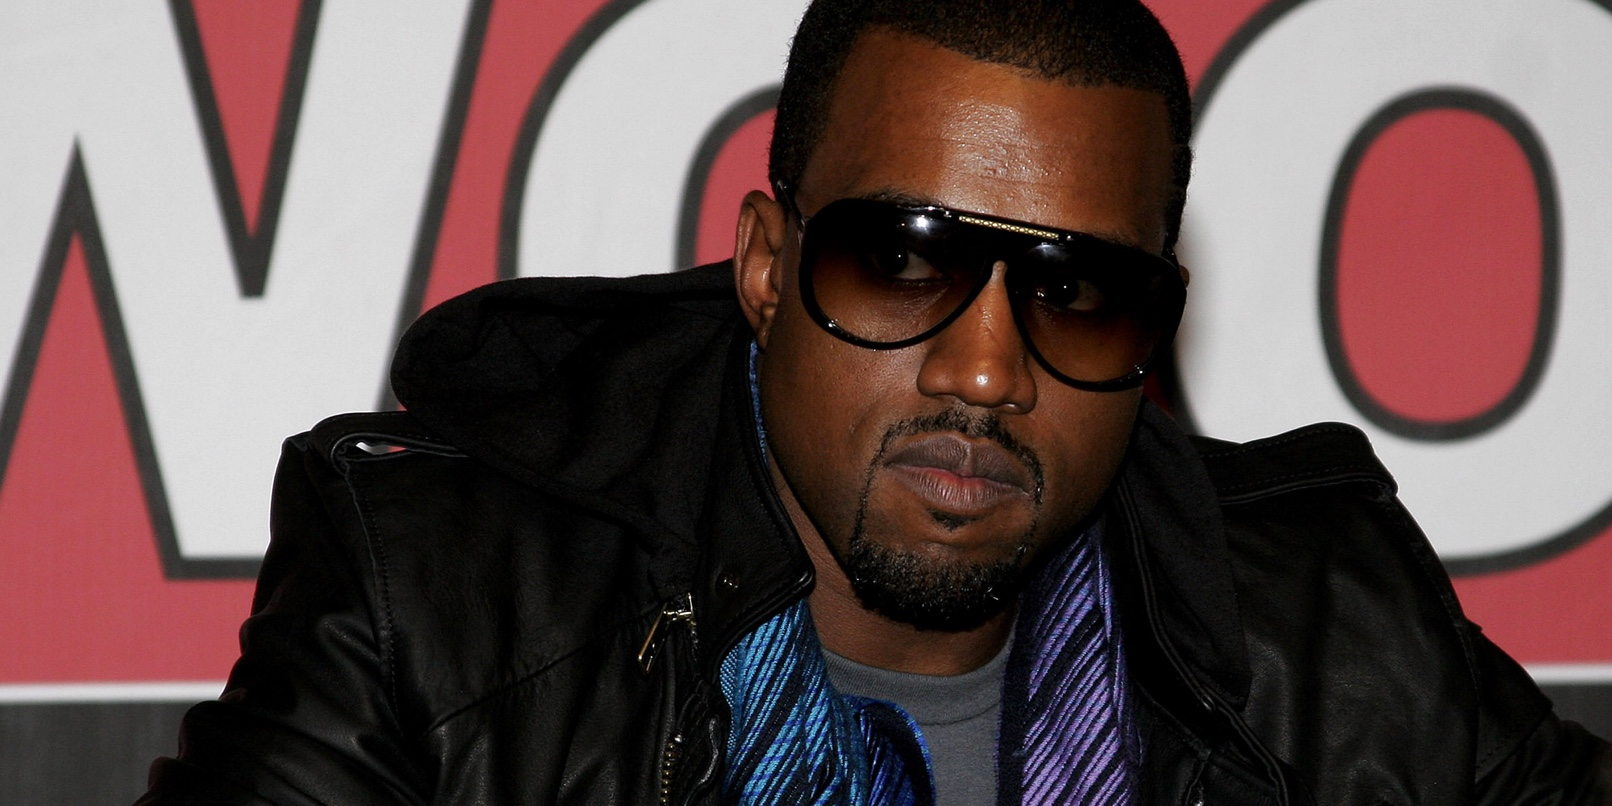 Kanye album launch pushes Tidal to the top US app, now he's begging Mark Zuckerberg for cash